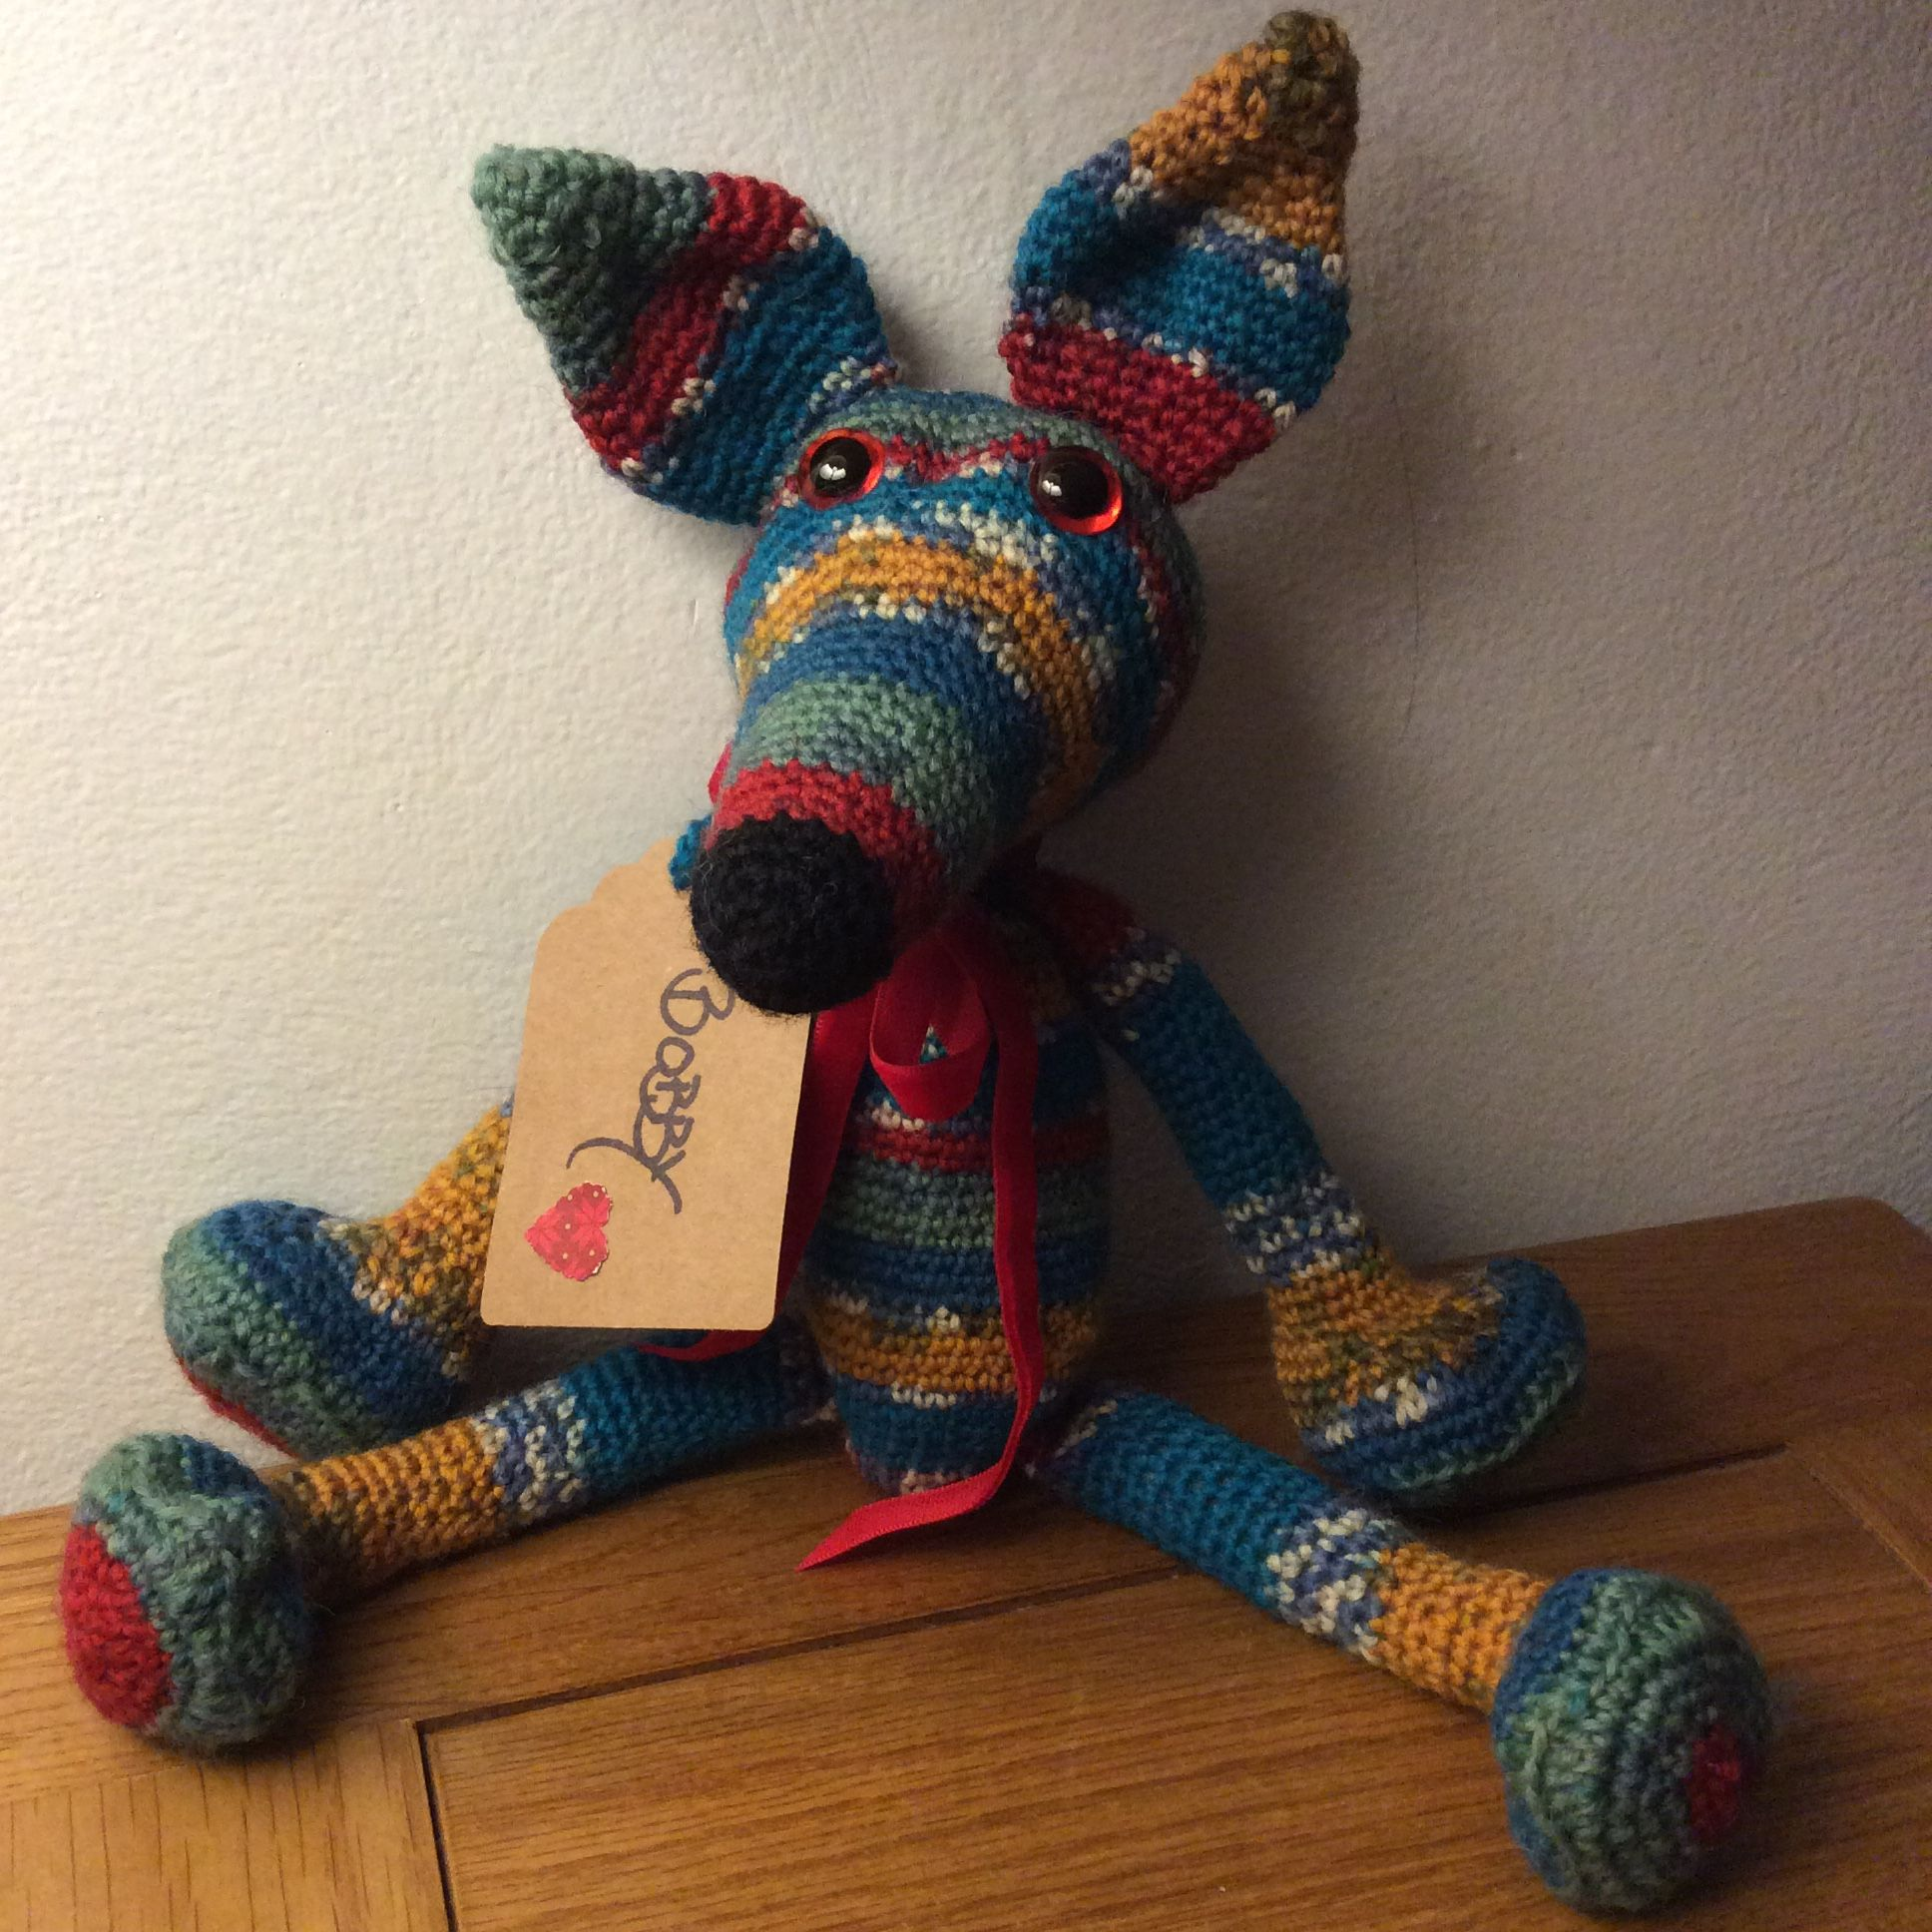 Italian English Animsld: My Latest Crocheted Amigurumi Greyhound / Lurcher